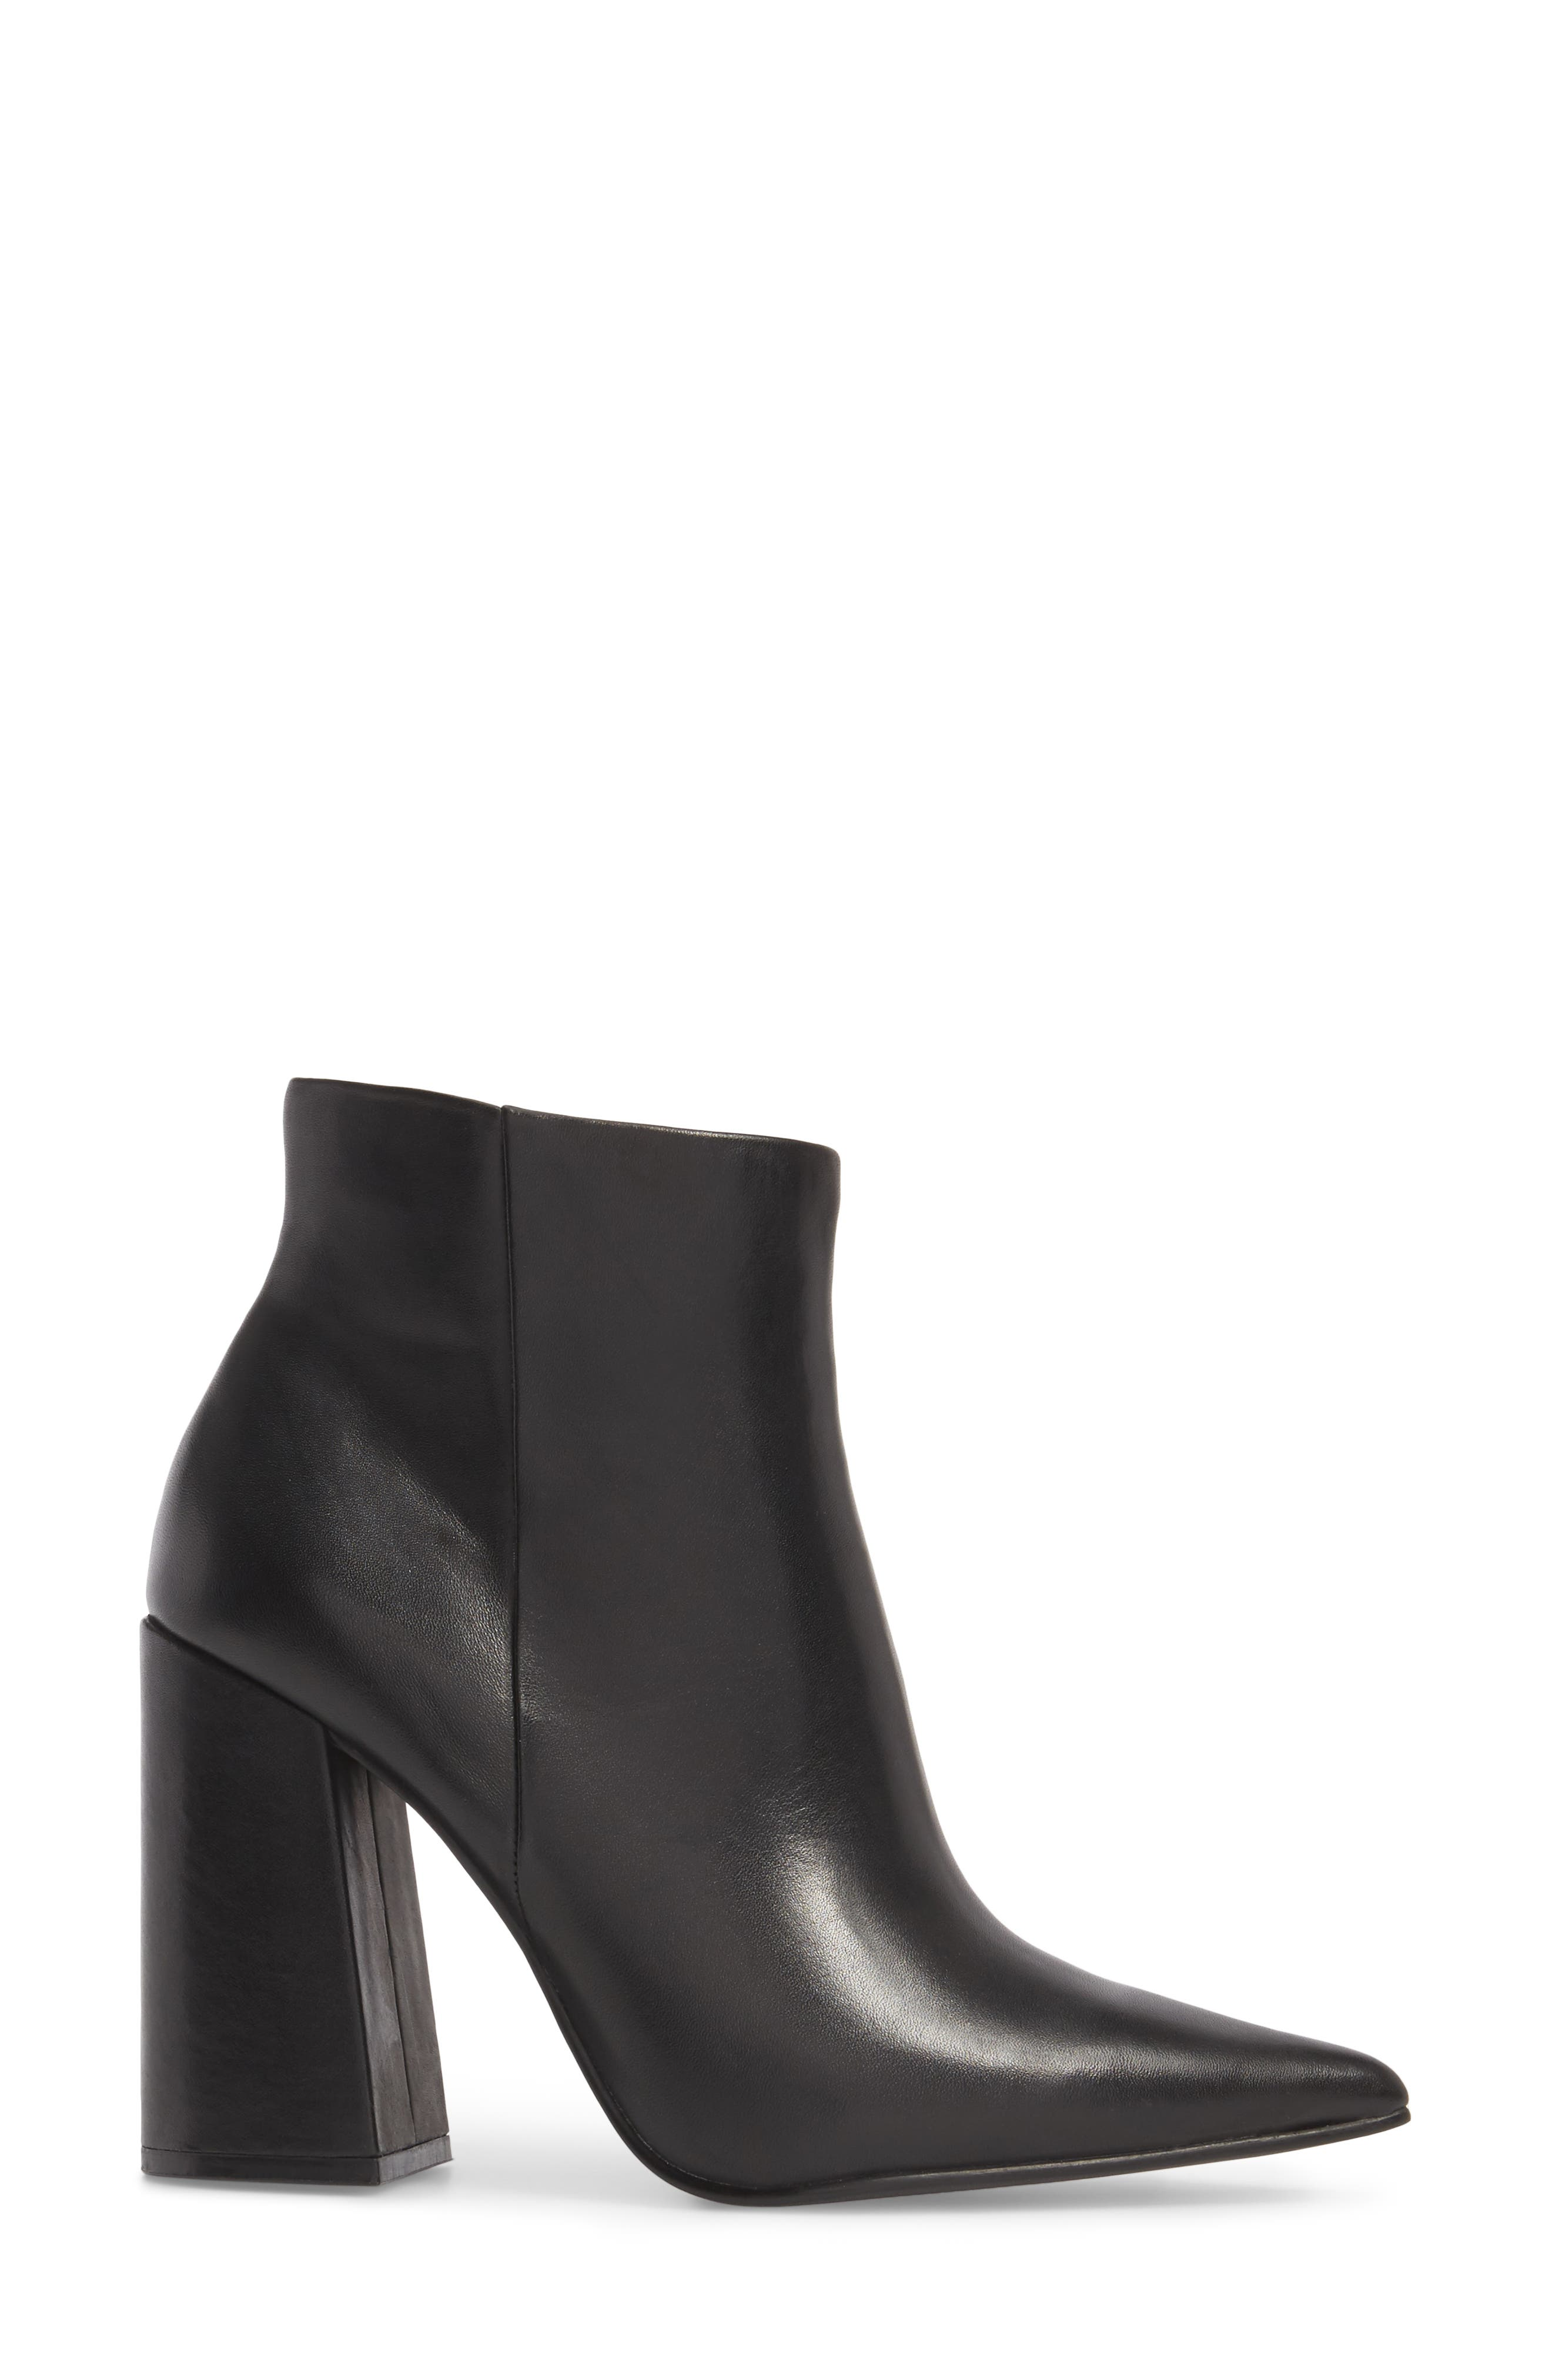 Justify Flared Heel Bootie,                             Alternate thumbnail 5, color,